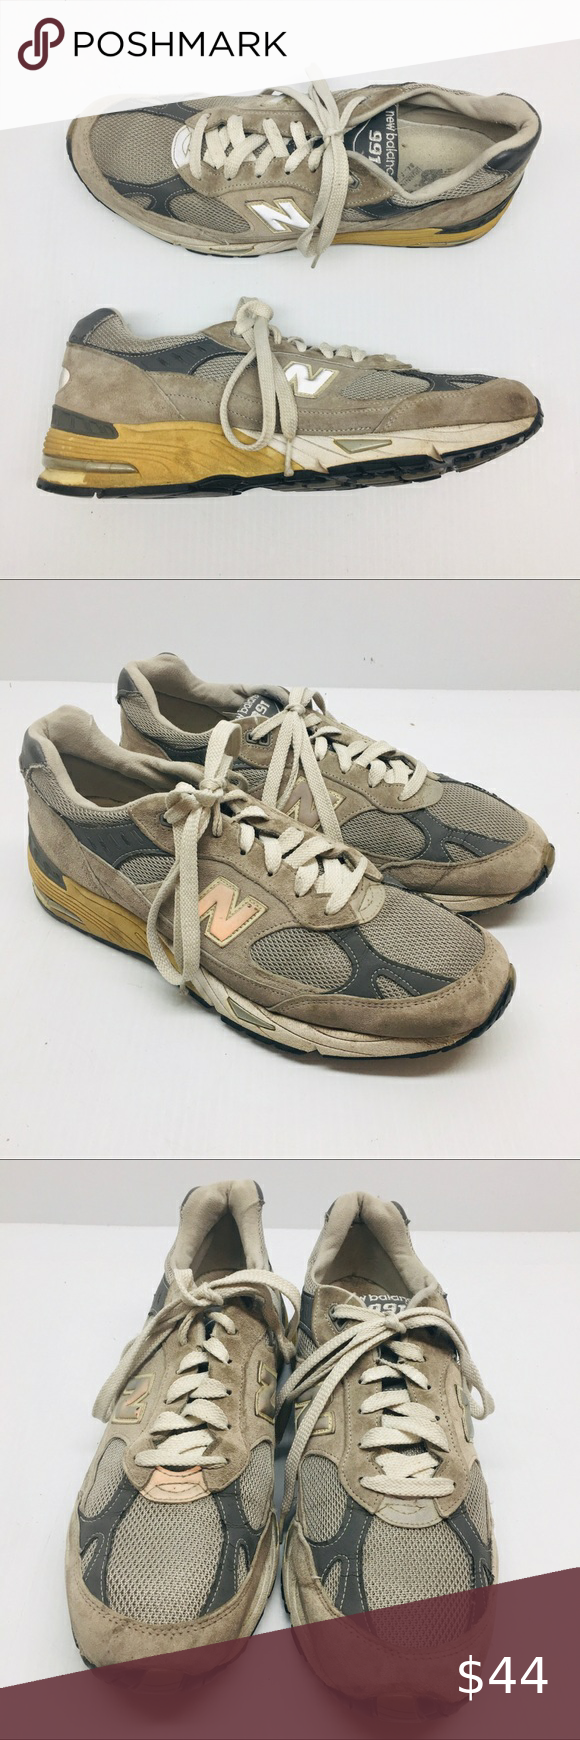 New Balance 991 Men S Size 11d Made In Usa Vintage New Balance Shoes Vintage Clothes Design